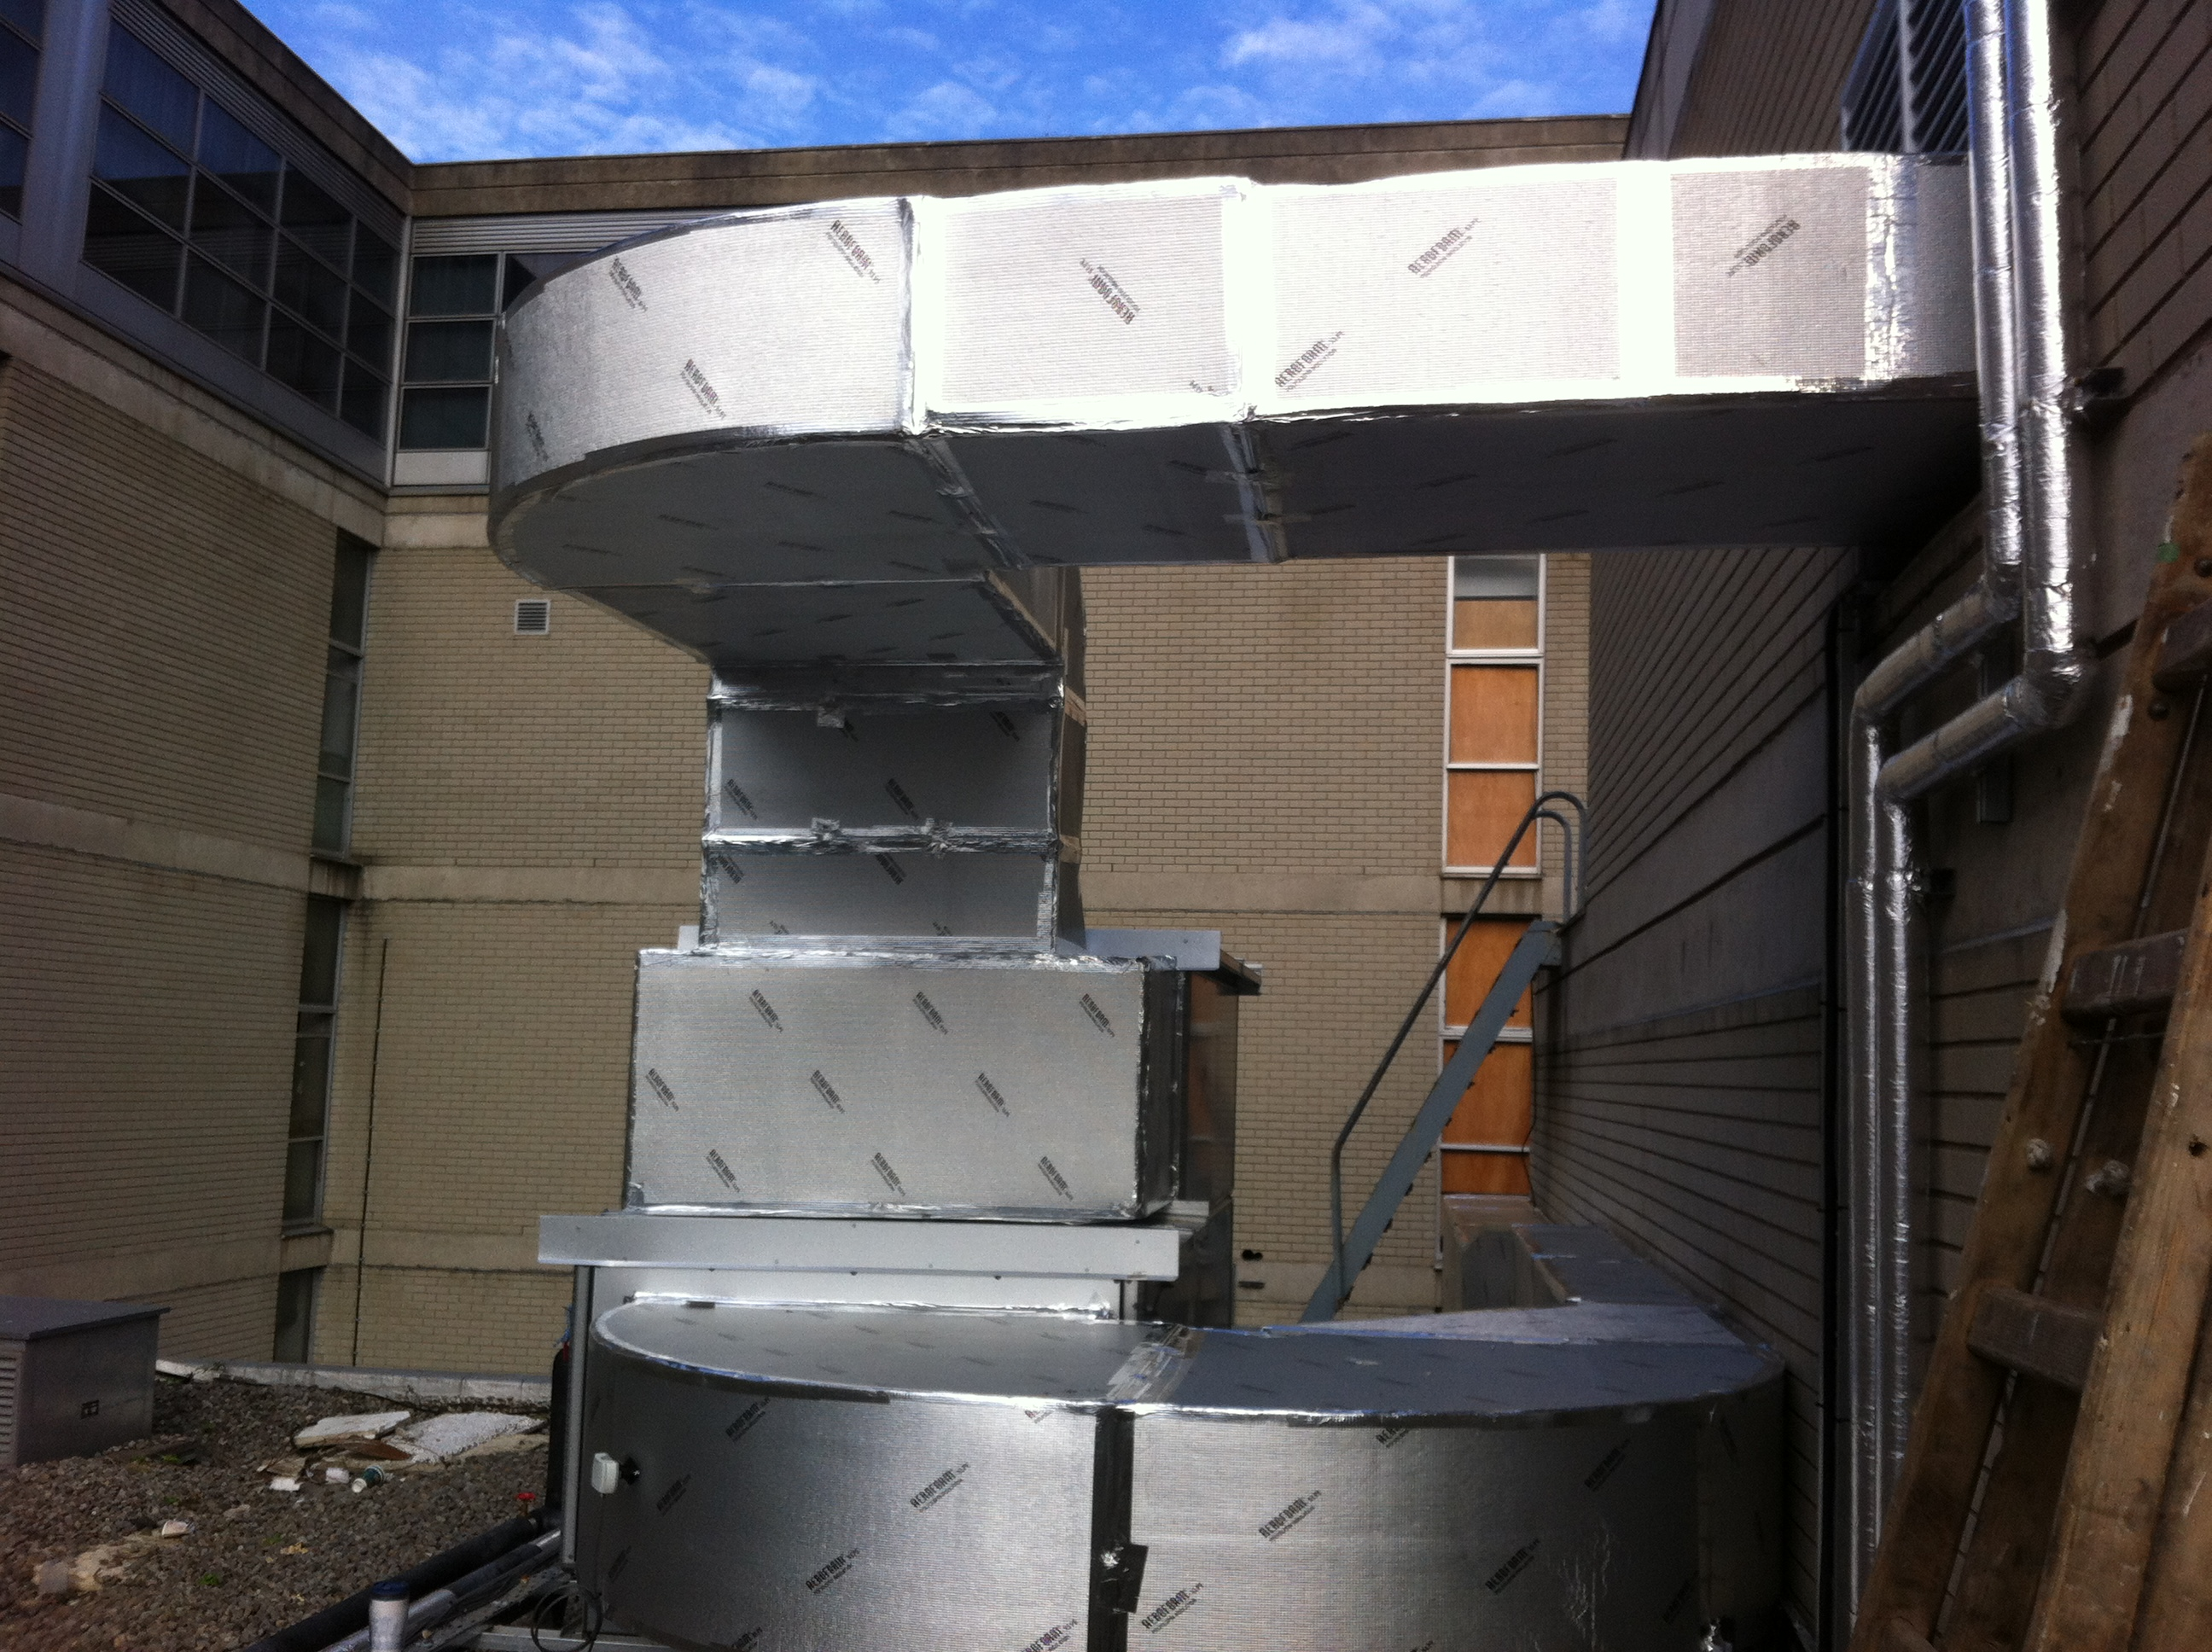 Industrail Ventilation system